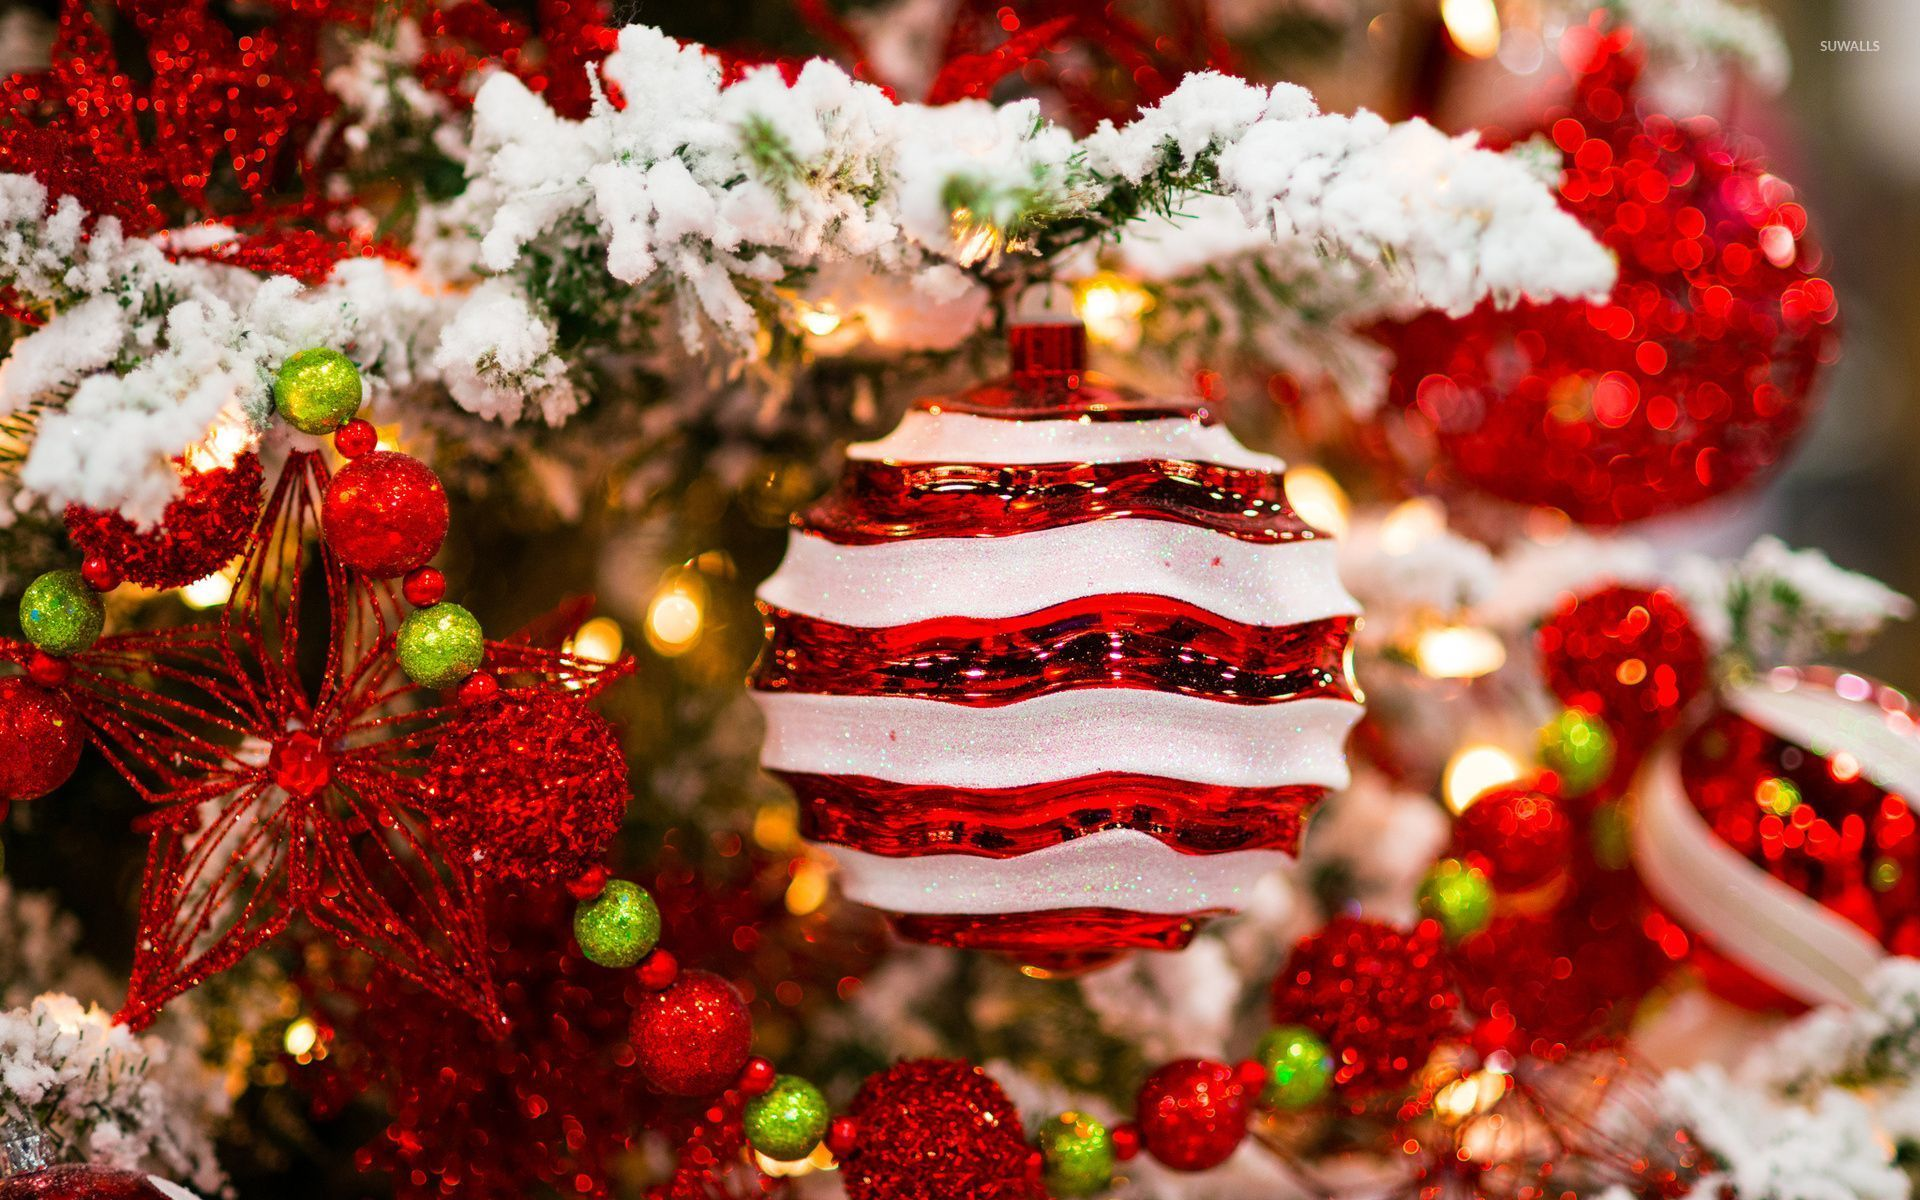 red-and-white-decorations-in-the-snowy-christmas-tree-52001-1920x1200.jpg